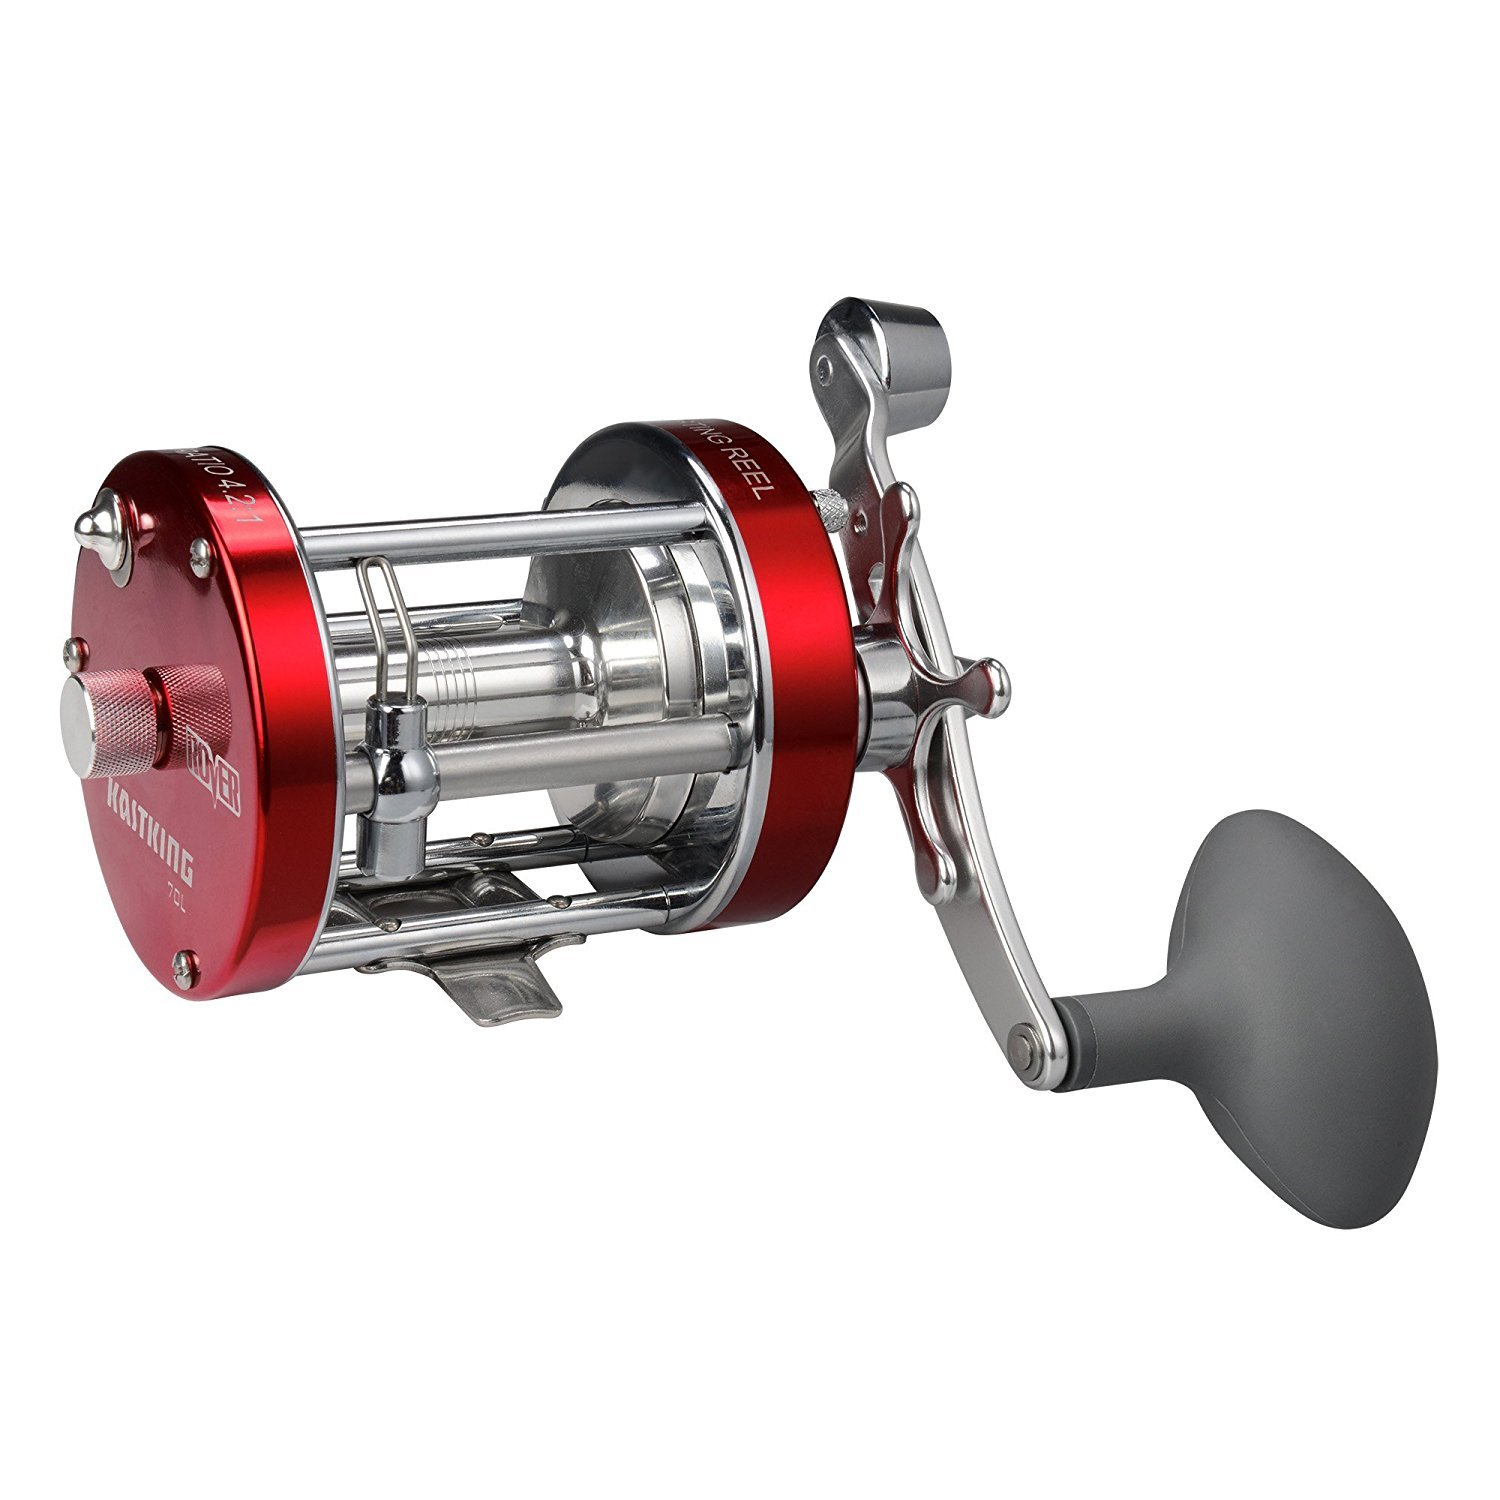 KastKing Rover Round Baitcasting Reel - No. 1 Rated Conventional Reel - Carbon Fiber Star Drag - Reinforced Metal Body